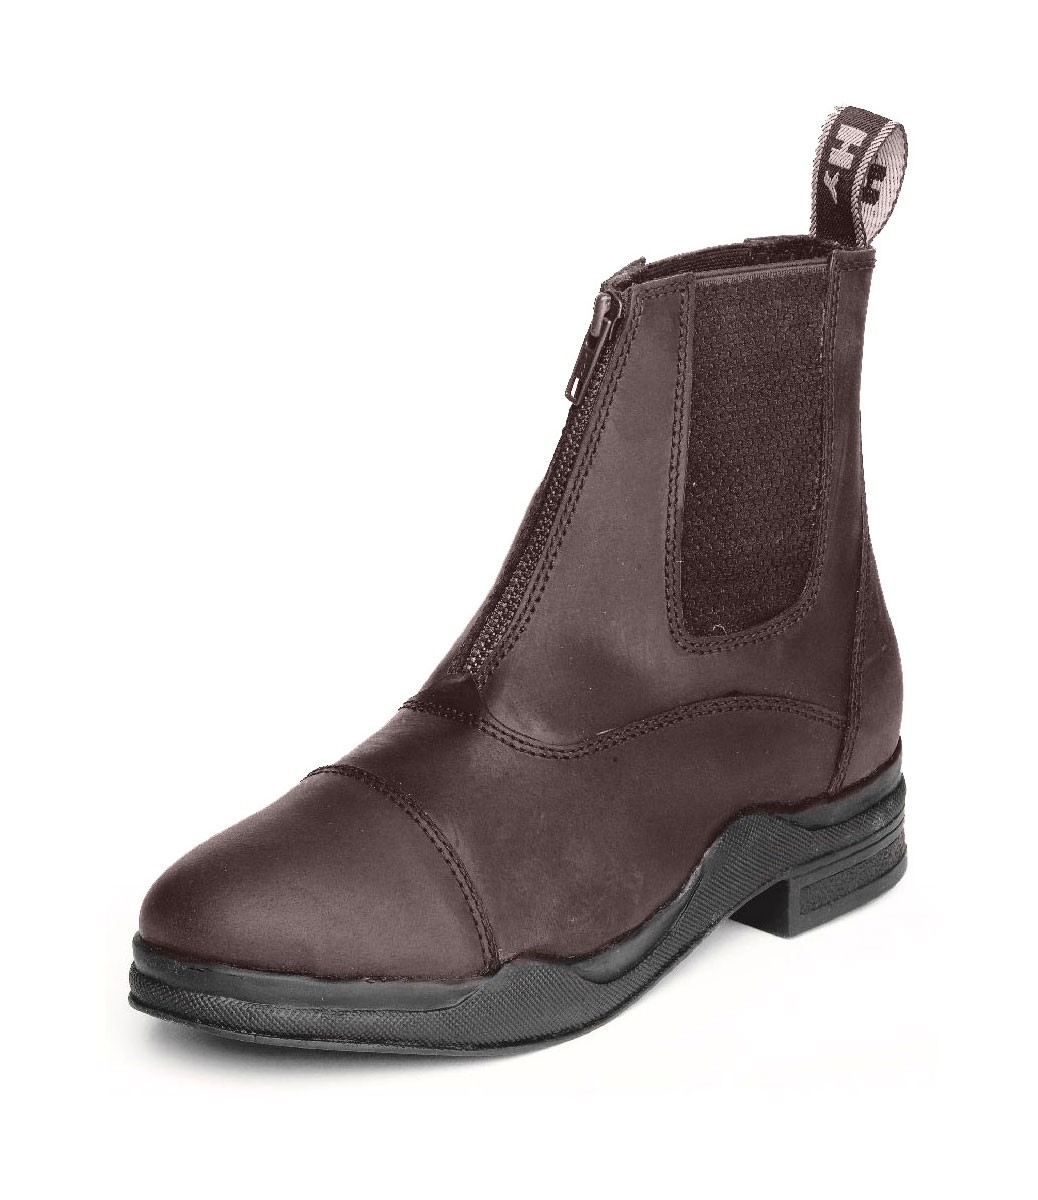 HyLand Wax Leather Zip Boot  - Thomas Irving's equestrian and accessories store  HyLand Wax Leather Zip Boot